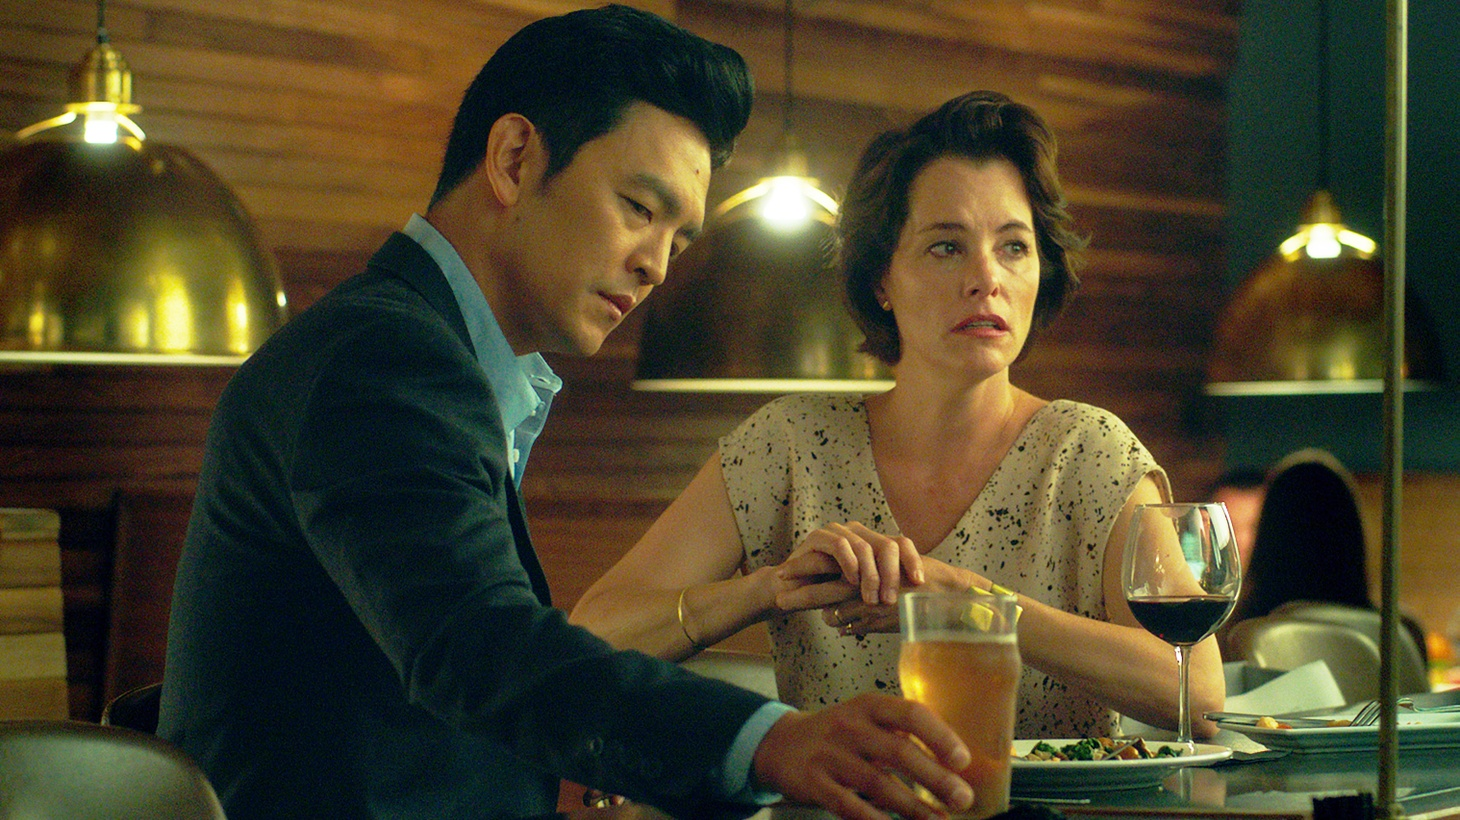 Actor John Cho joins Elvis to discuss his leading role in the romantic drama Columbus.